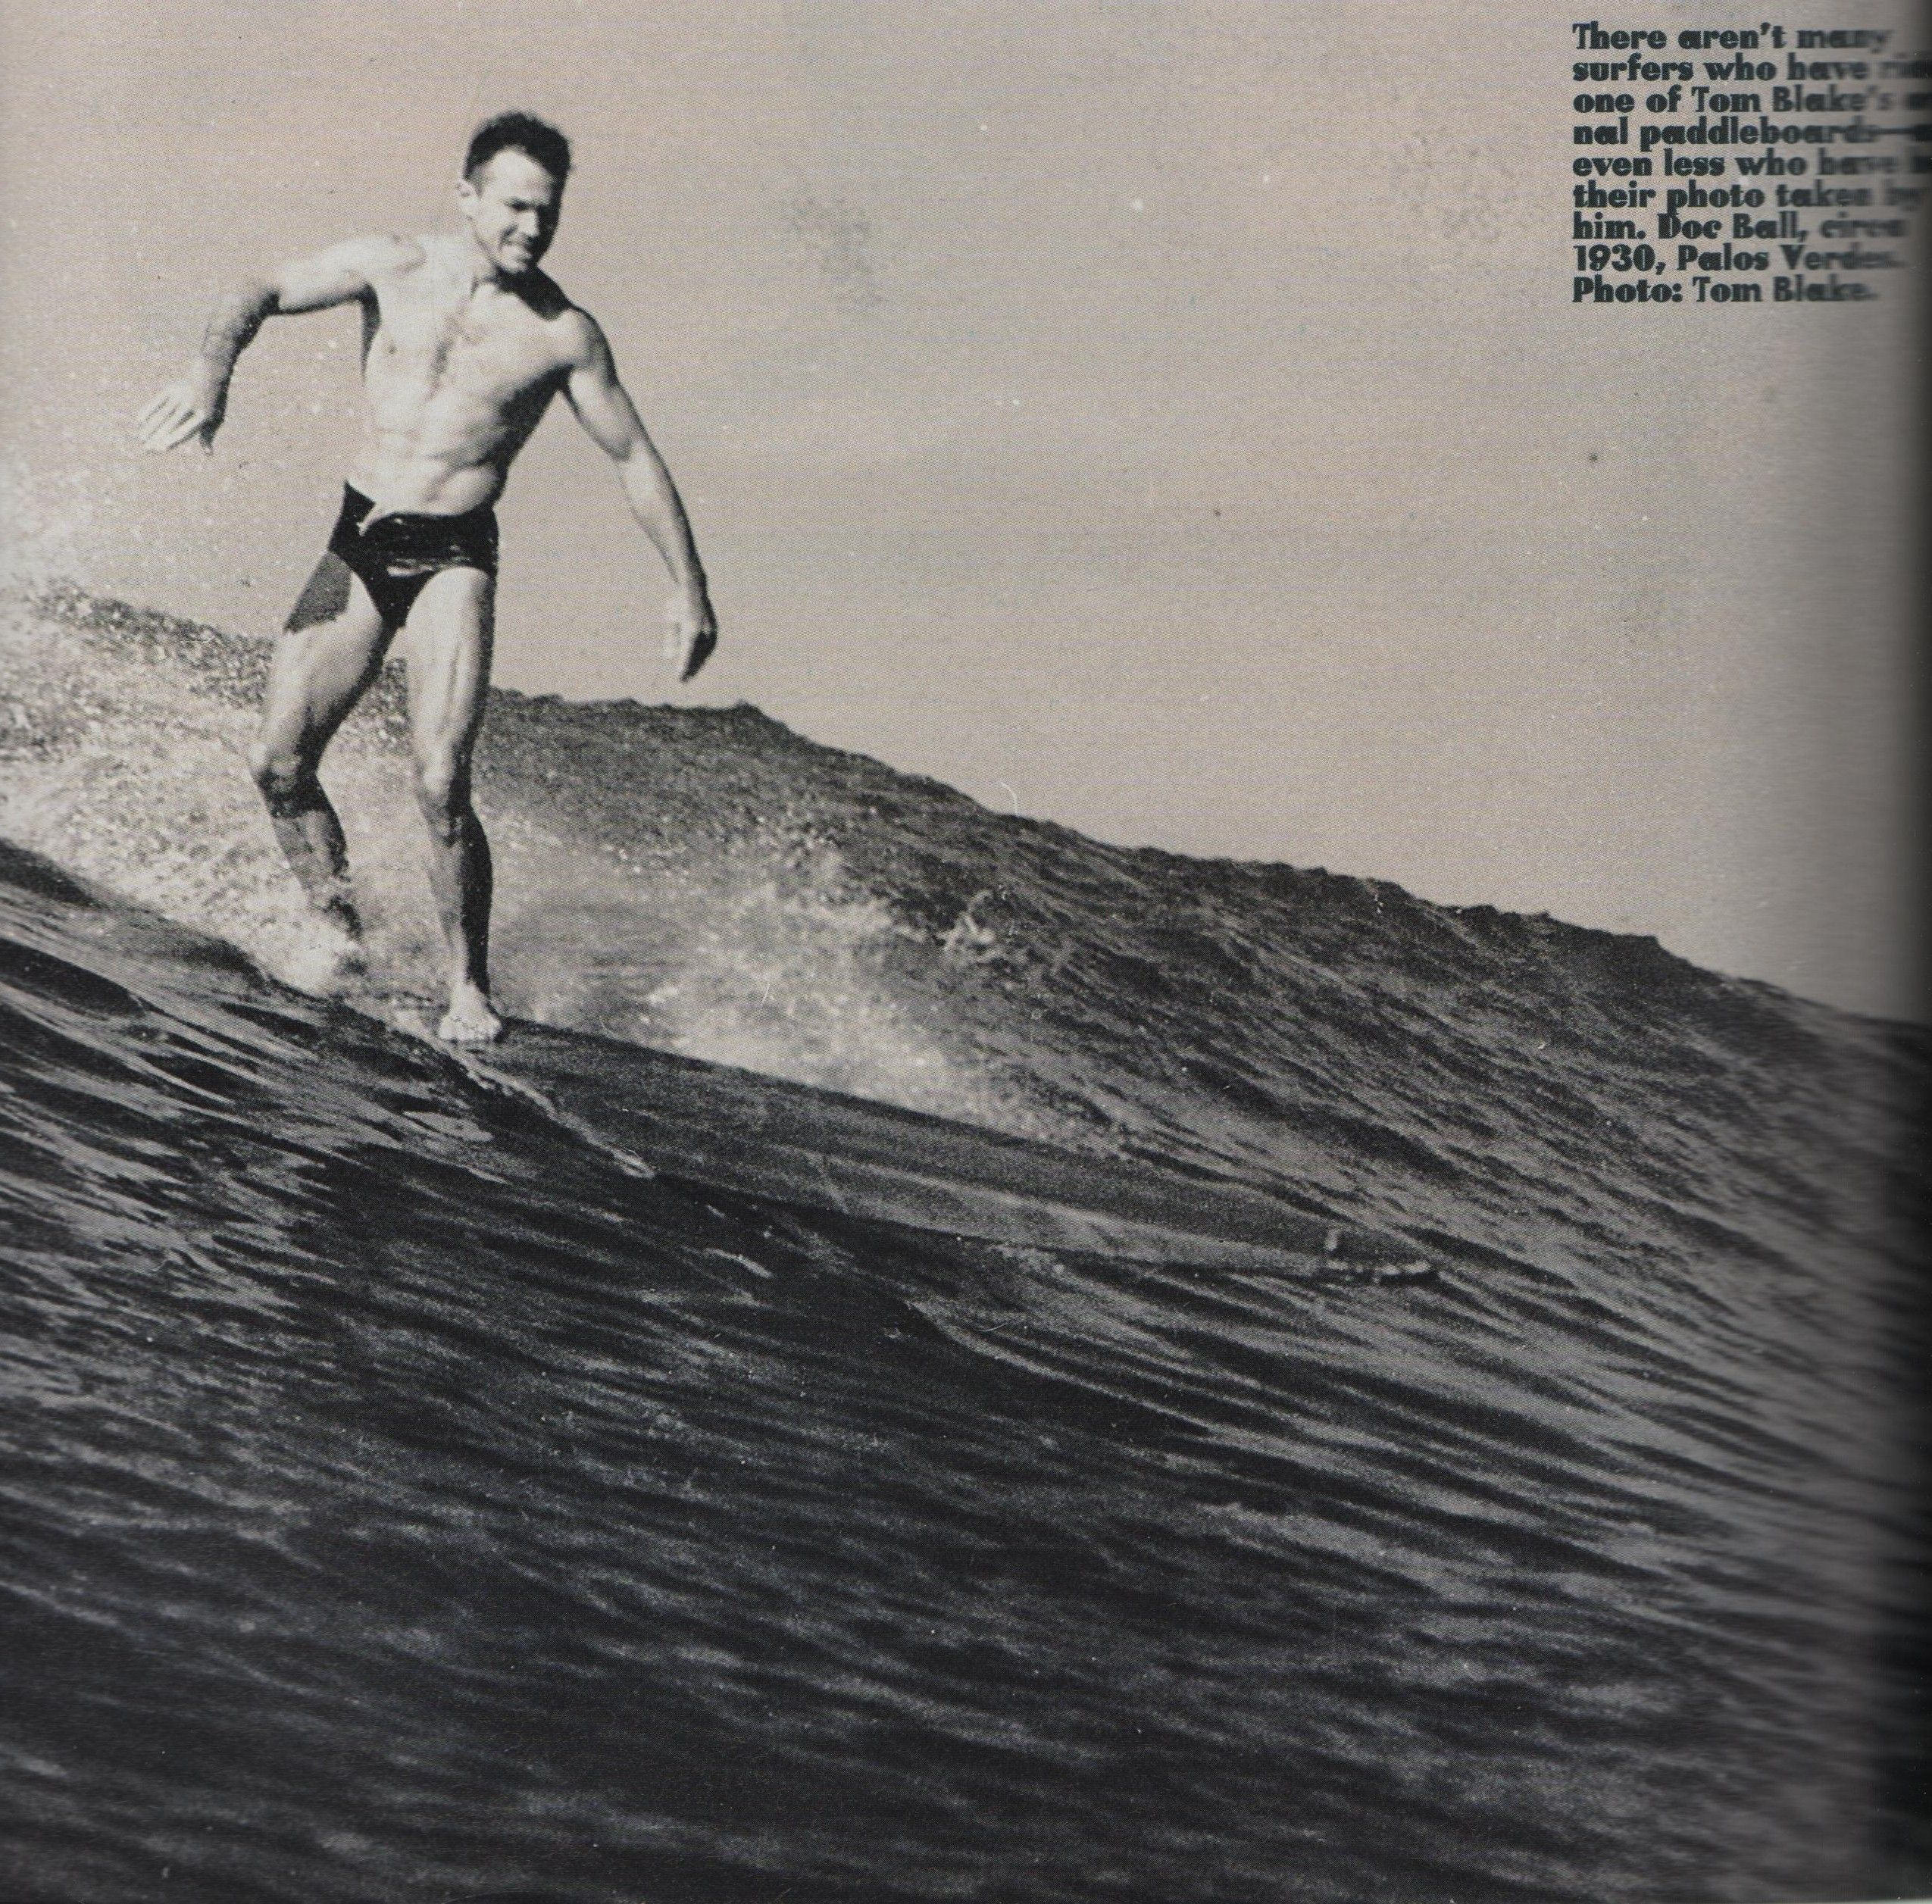 Doc Ball Surfing The Pv Cove Photo By Tom Blake A Pioneer Vintage Surf Vintage Beach Surfing